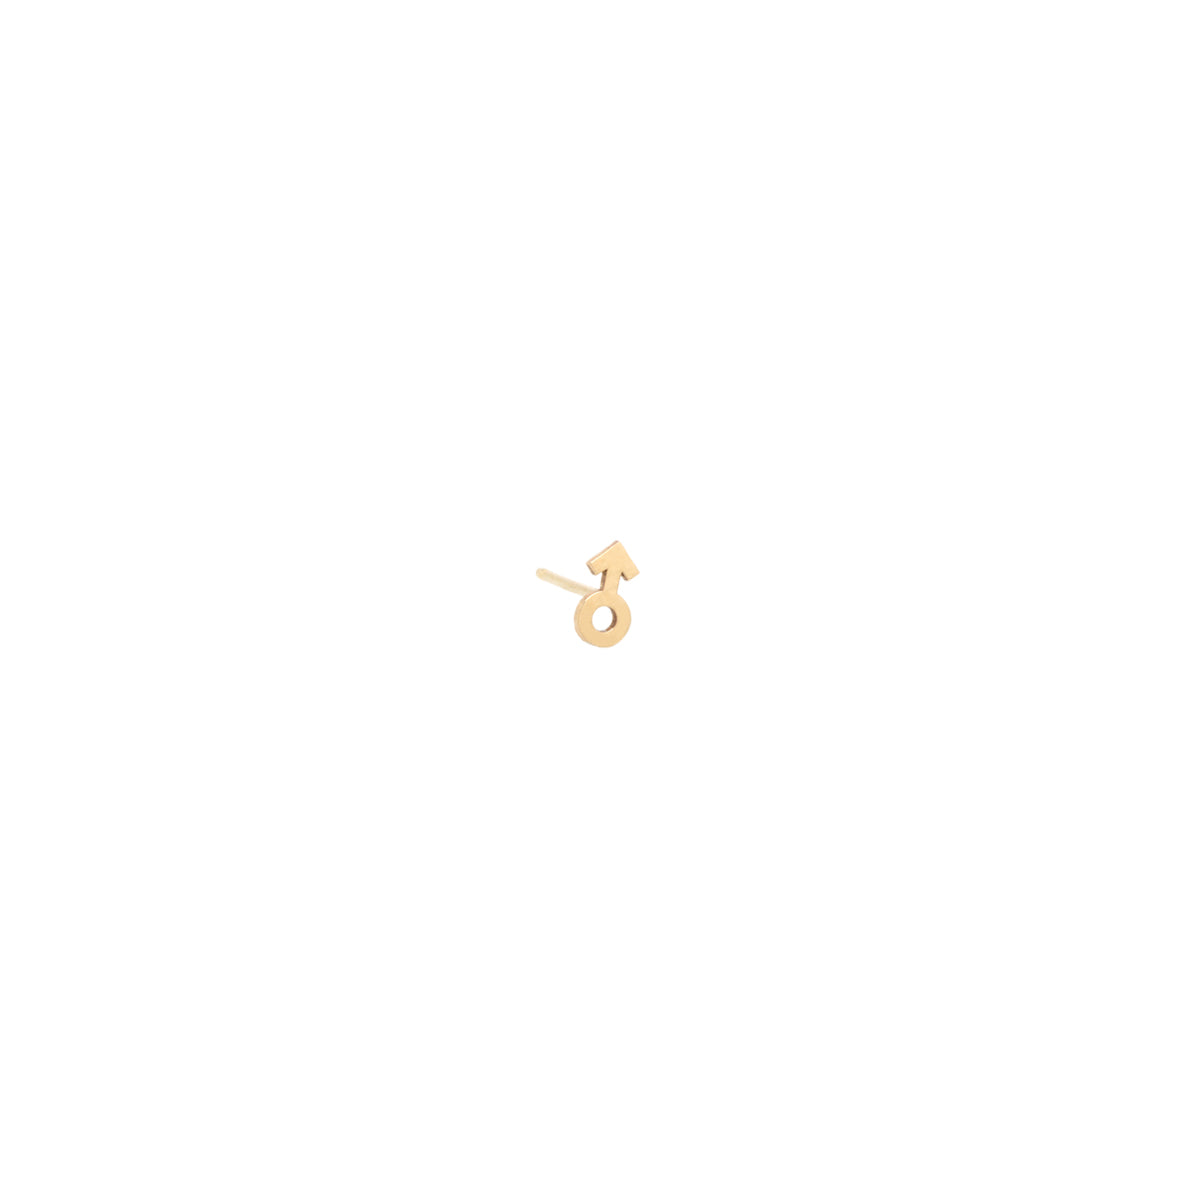 14k itty bitty male symbol stud